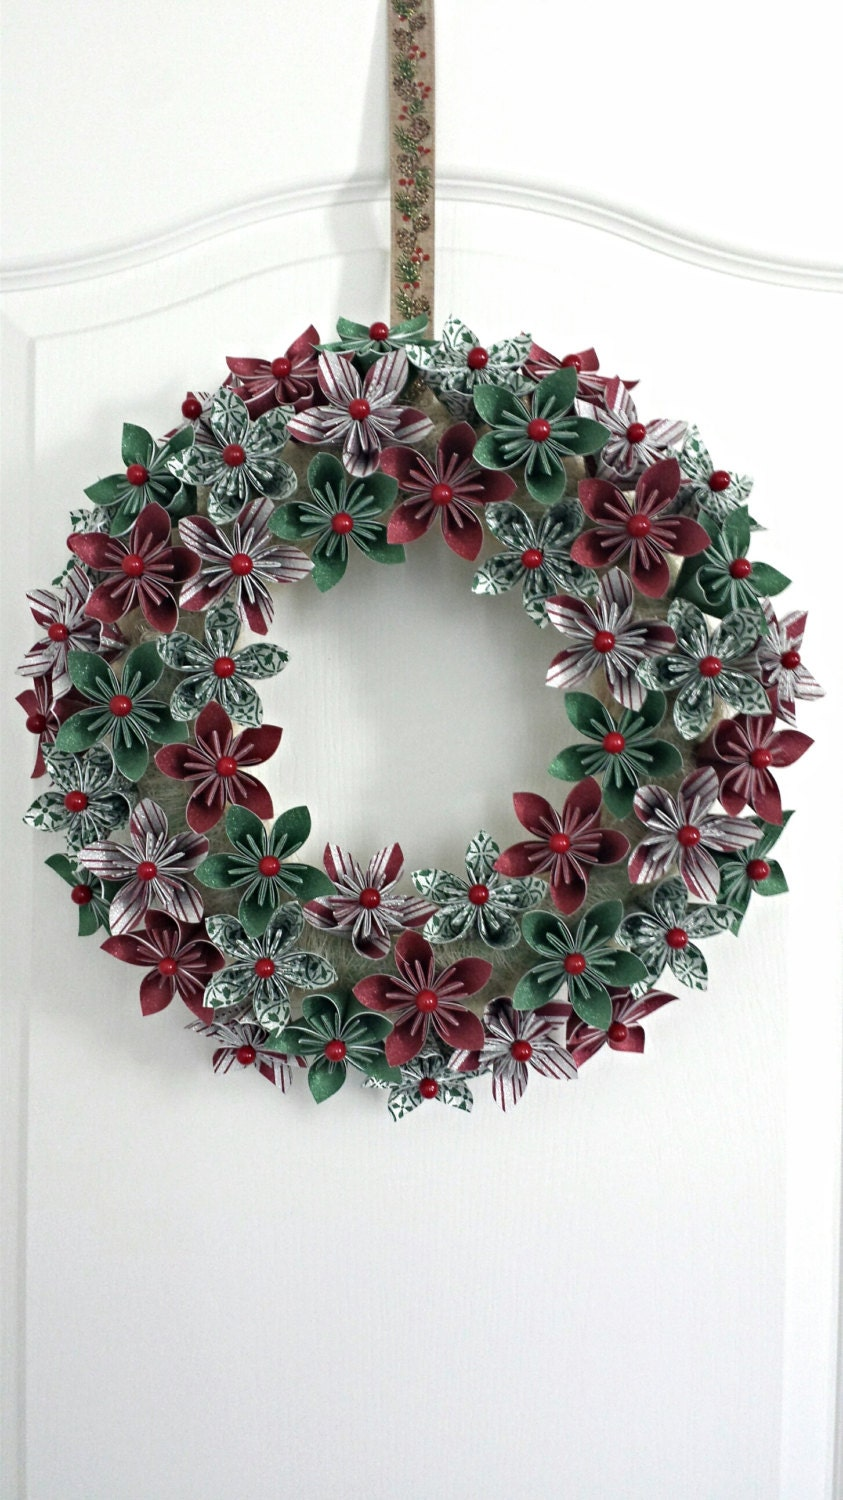 Sparkly Holiday Origami Flower Wreath/Christmas Wreath/Holiday Wall Decor